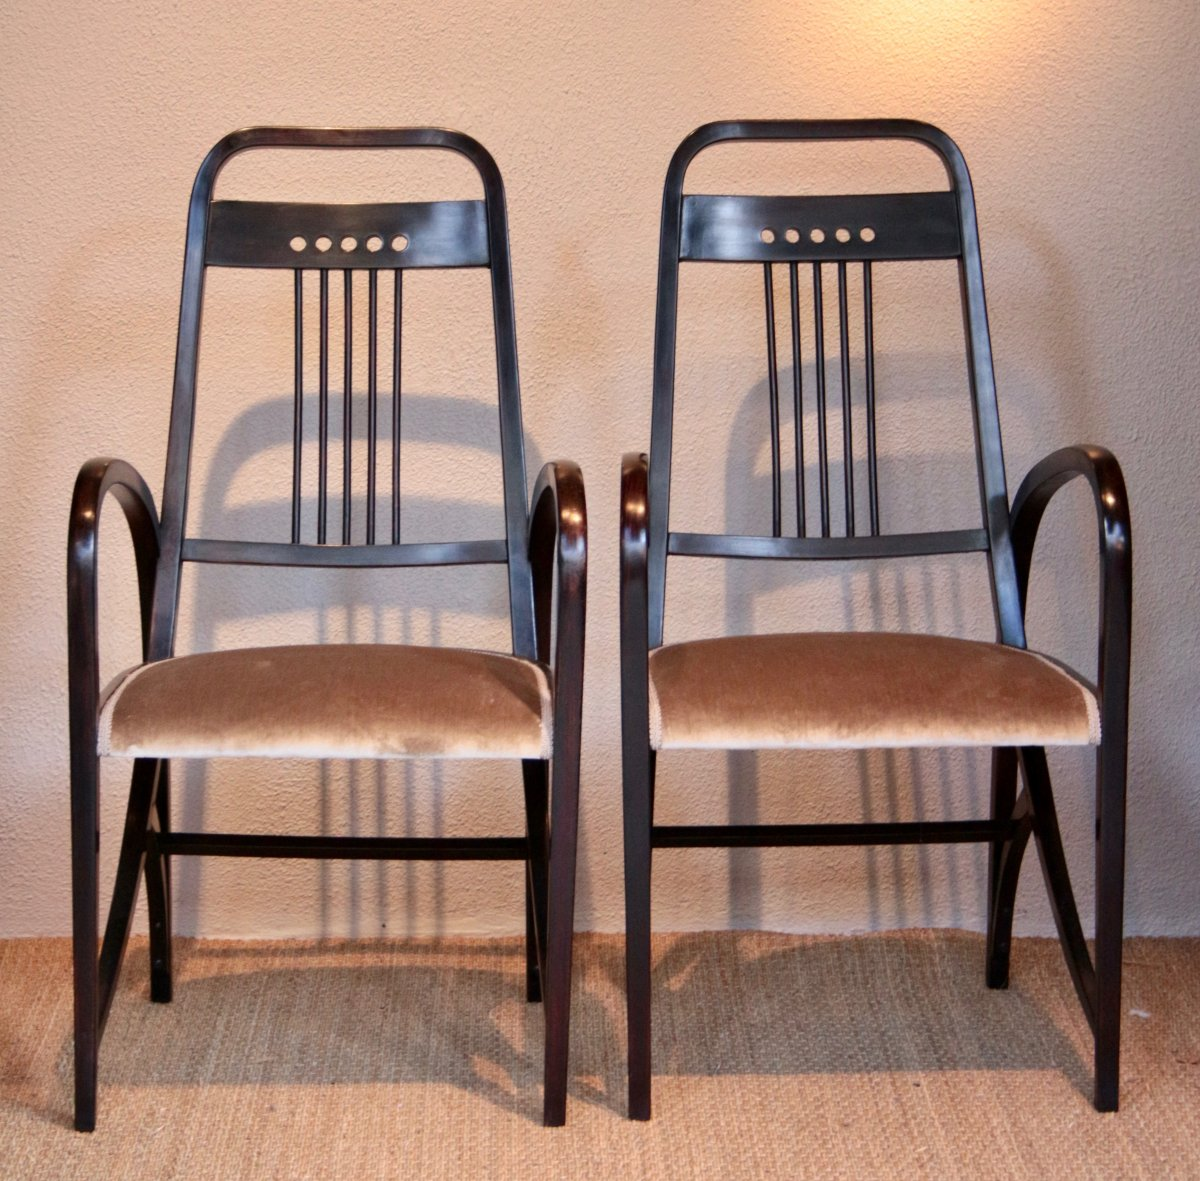 Pair Of Thonet Armchairs, 1900, Attributed To Josef Hoffmann